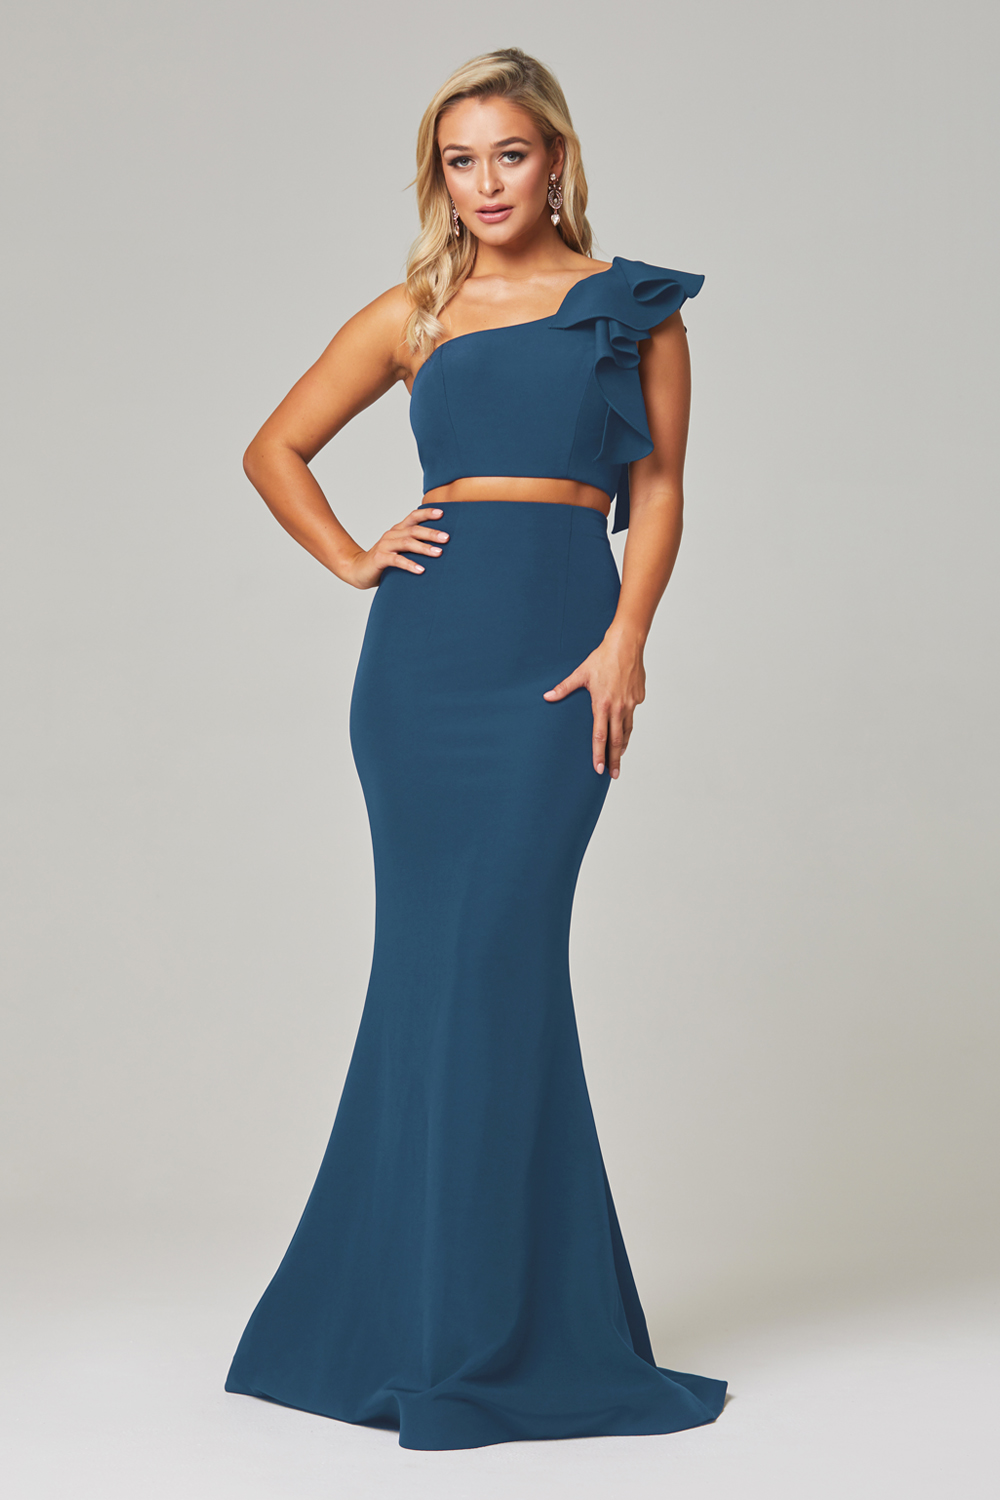 Skyler teal dress front